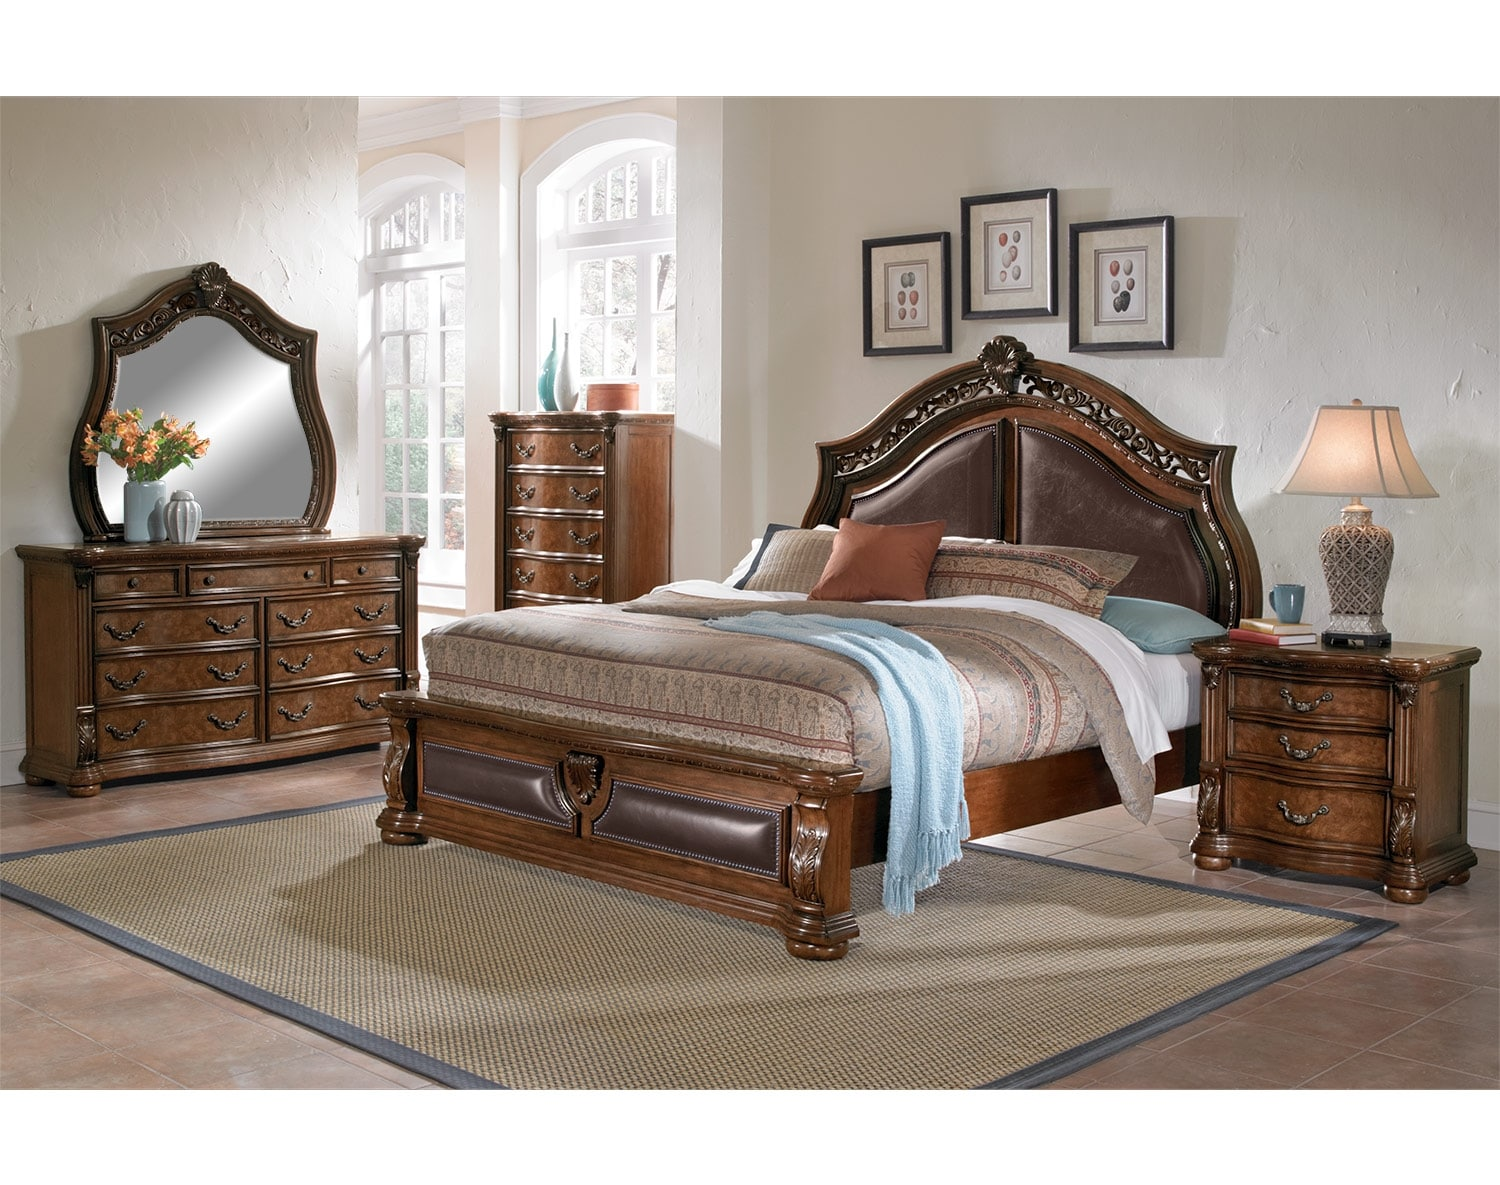 American Furniture Jpg: The Morocco Collection - Pecan